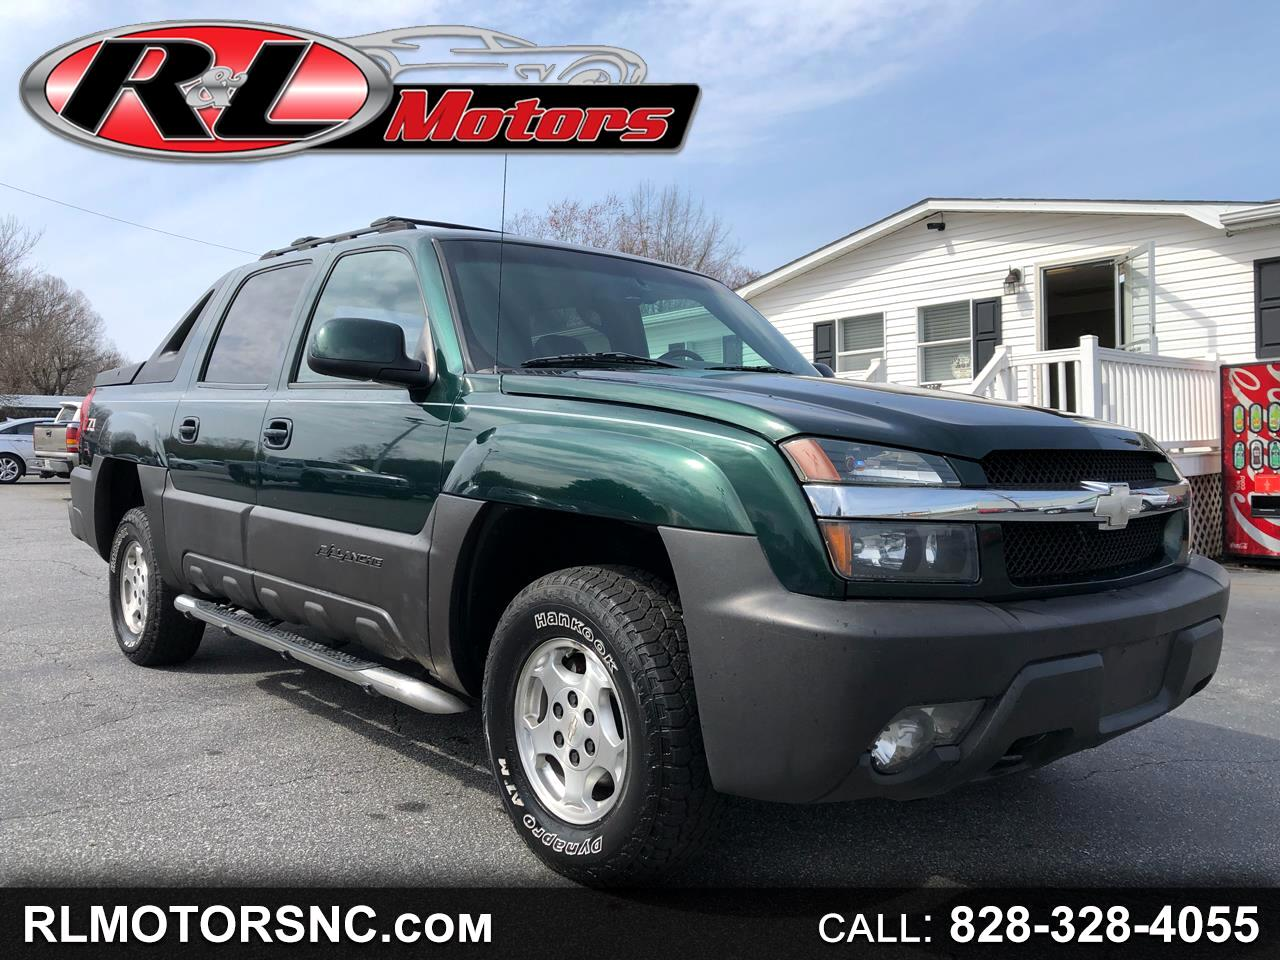 2003 Chevrolet Avalanche LT 4WD